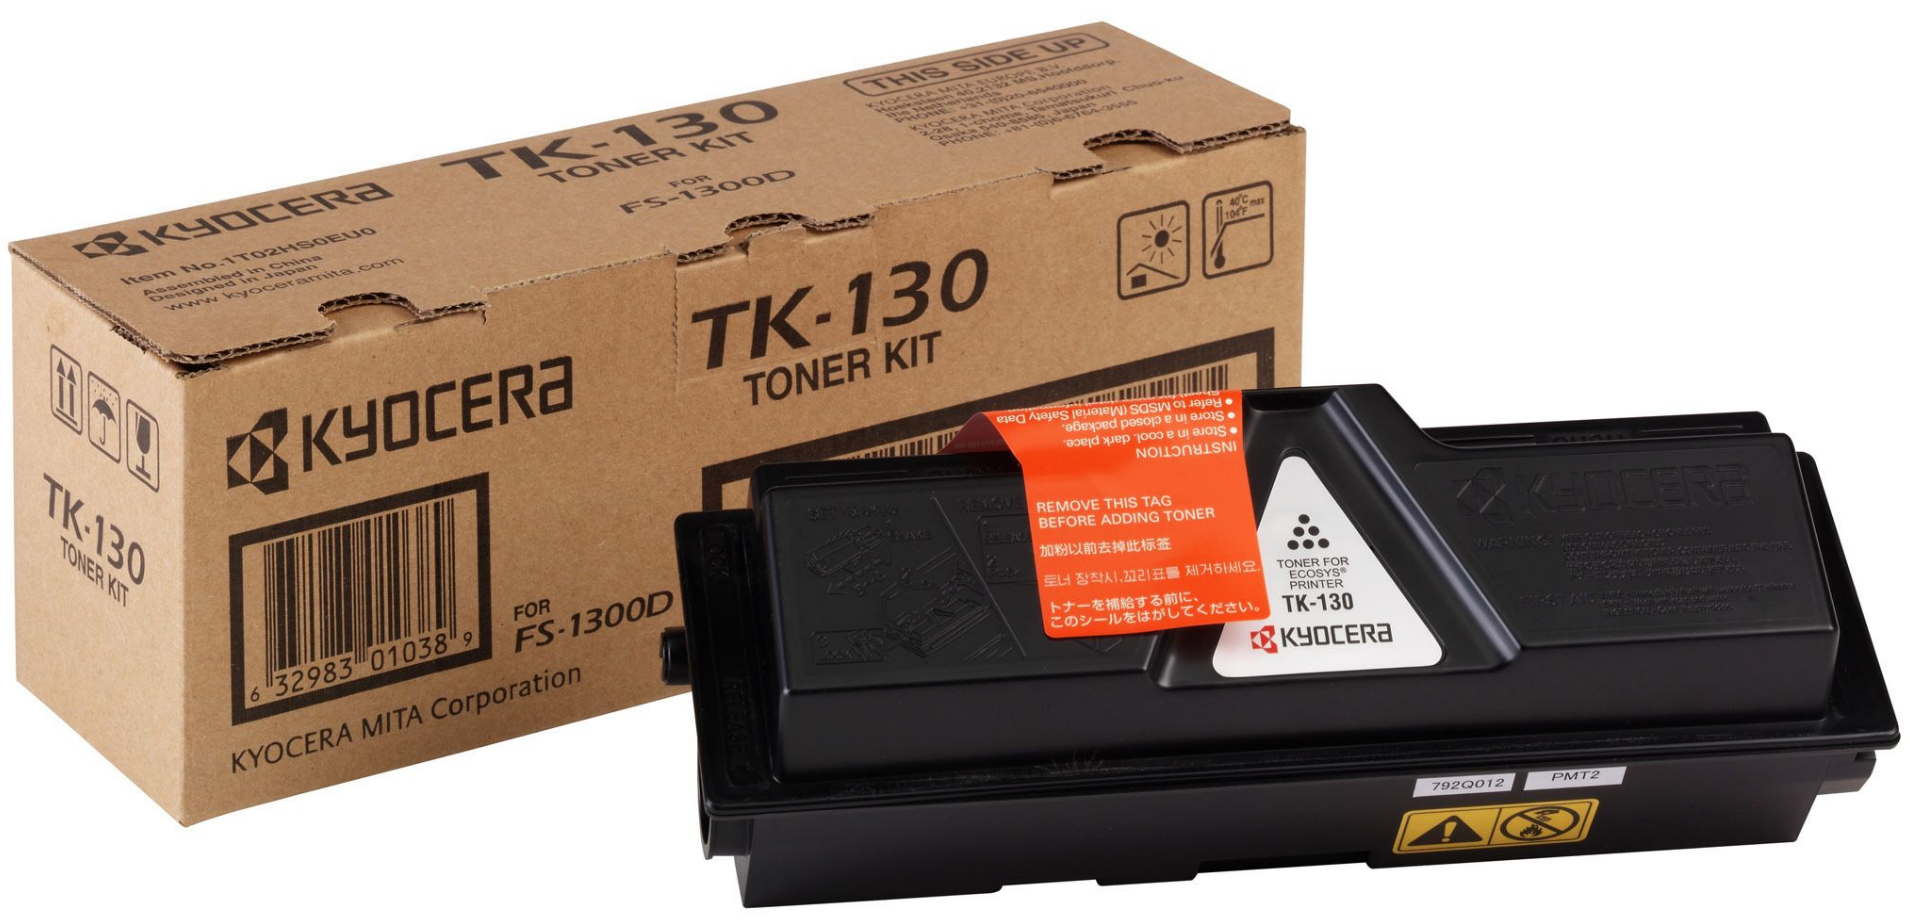 Remanufactured Kyocera TK130 Toner Cartridge Black 7k TK-130 - rem01